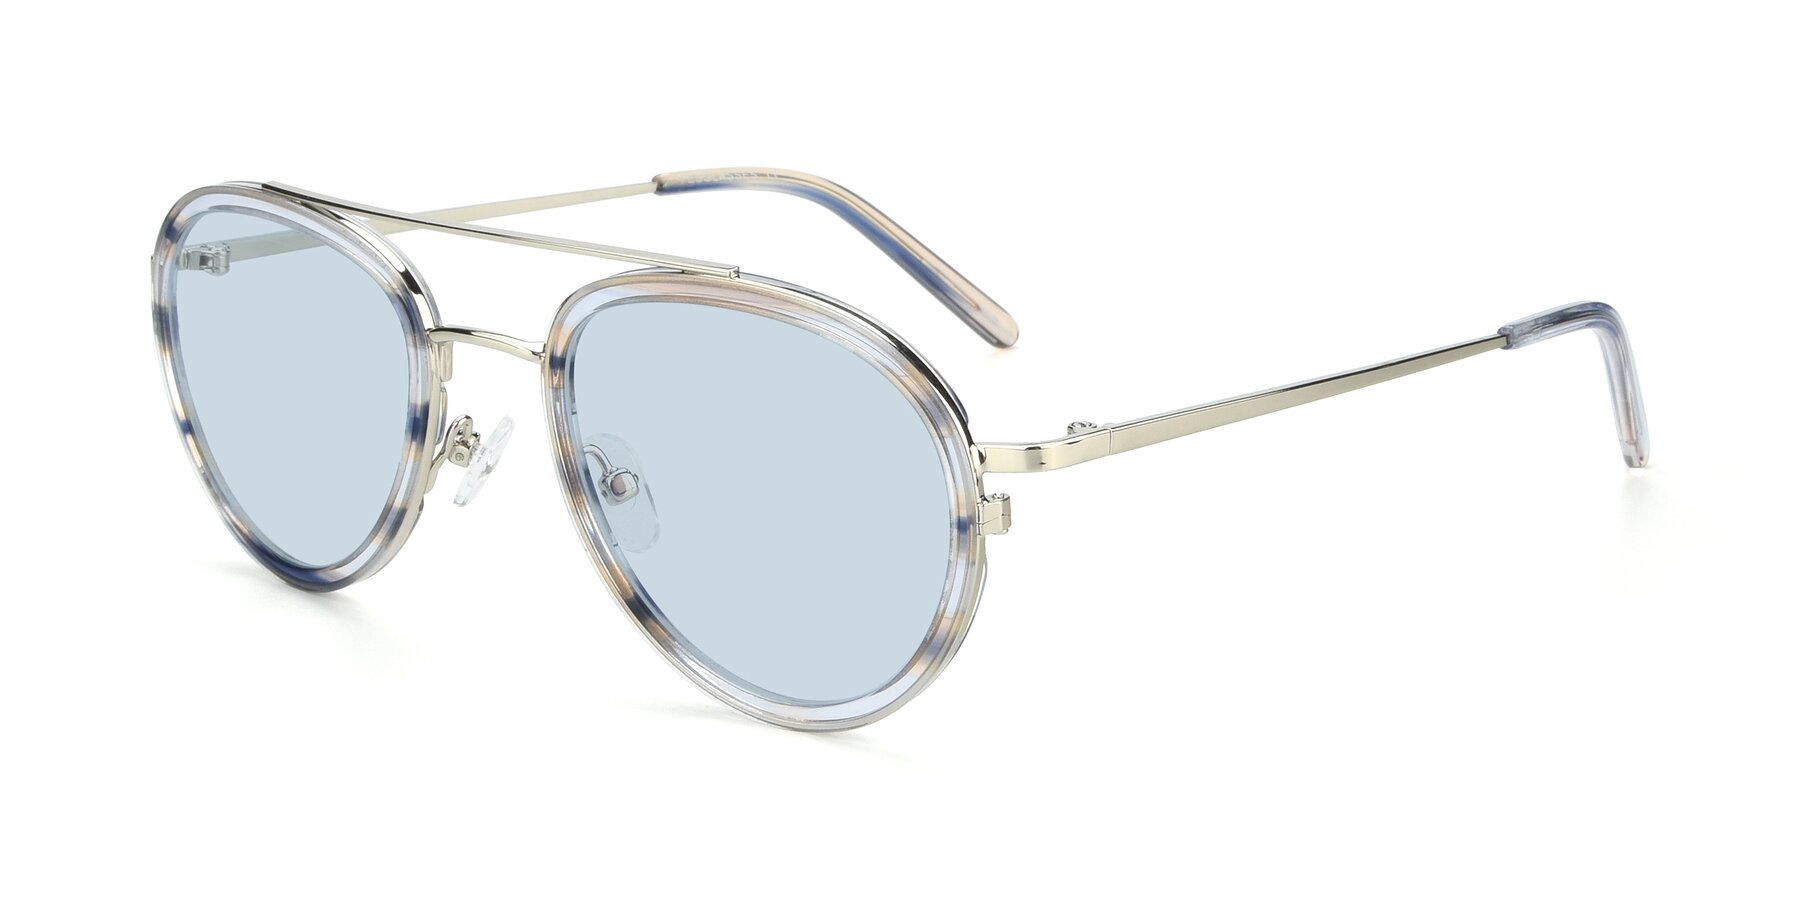 Angle of 9554 in Silver-Transparent with Light Blue Tinted Lenses